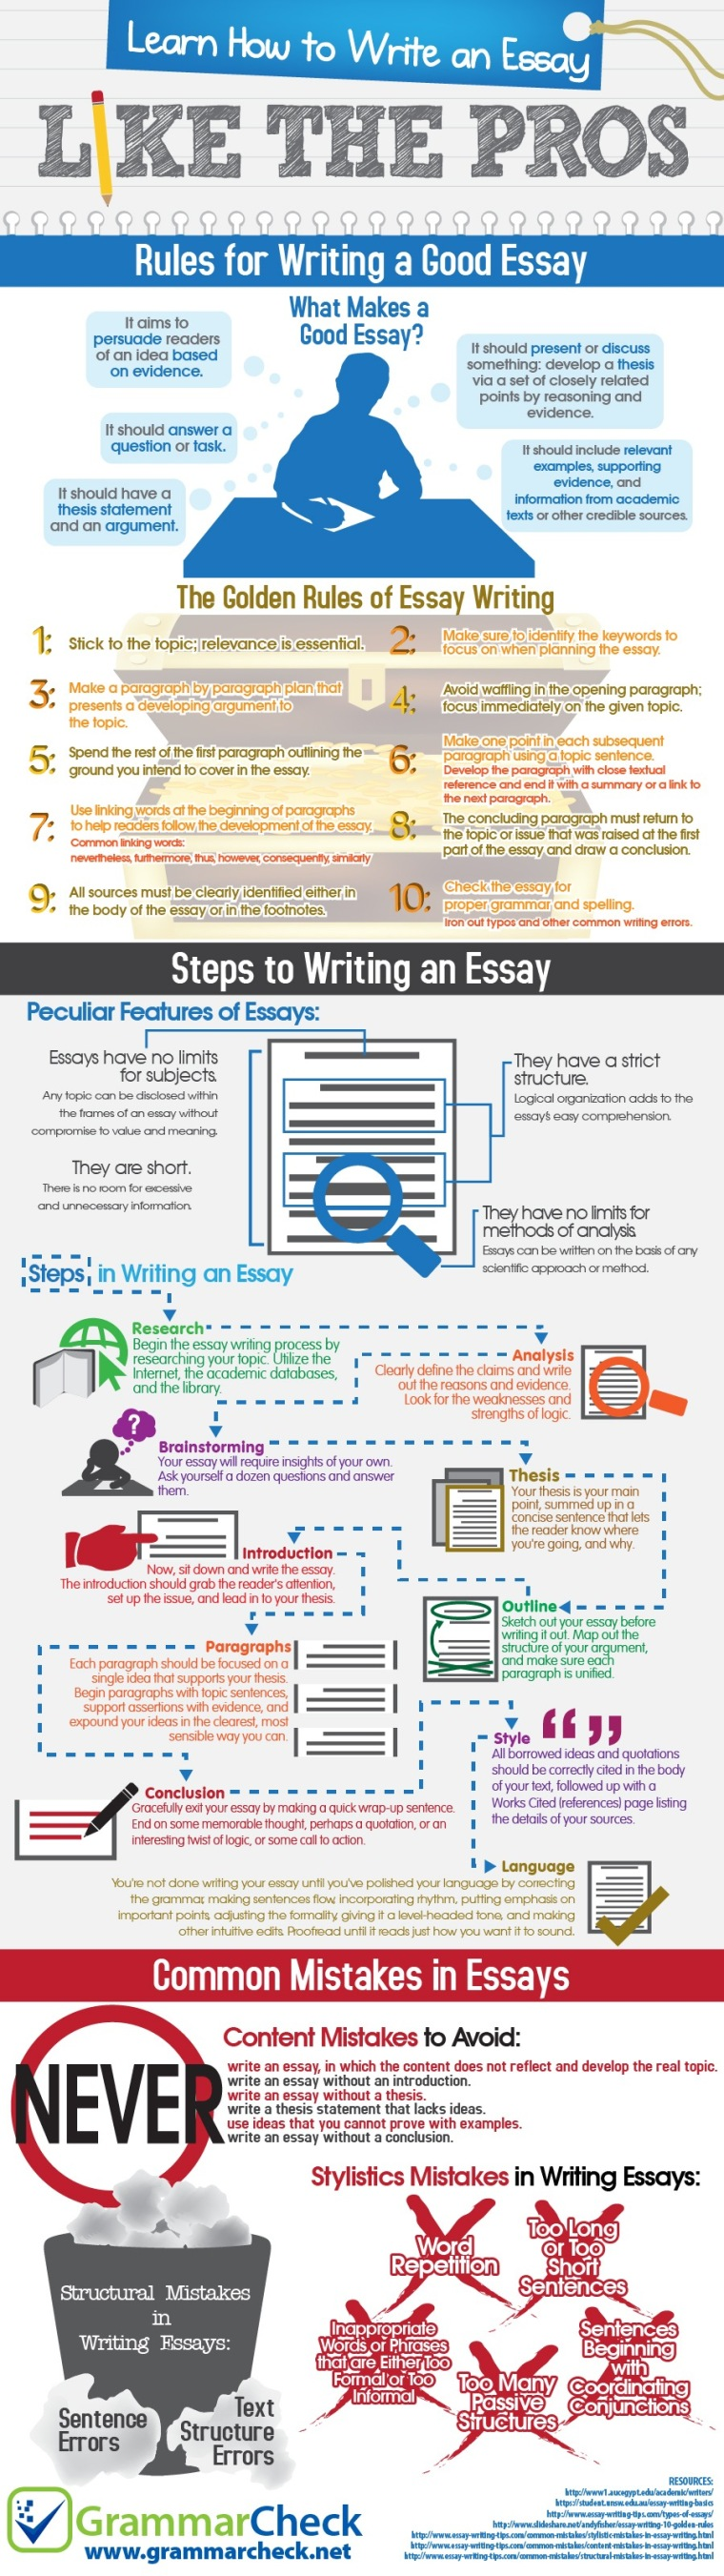 rules for essay writing rule of three how to write great essays  rules for writing a good essay reading writing coffee did you this helpful please let me